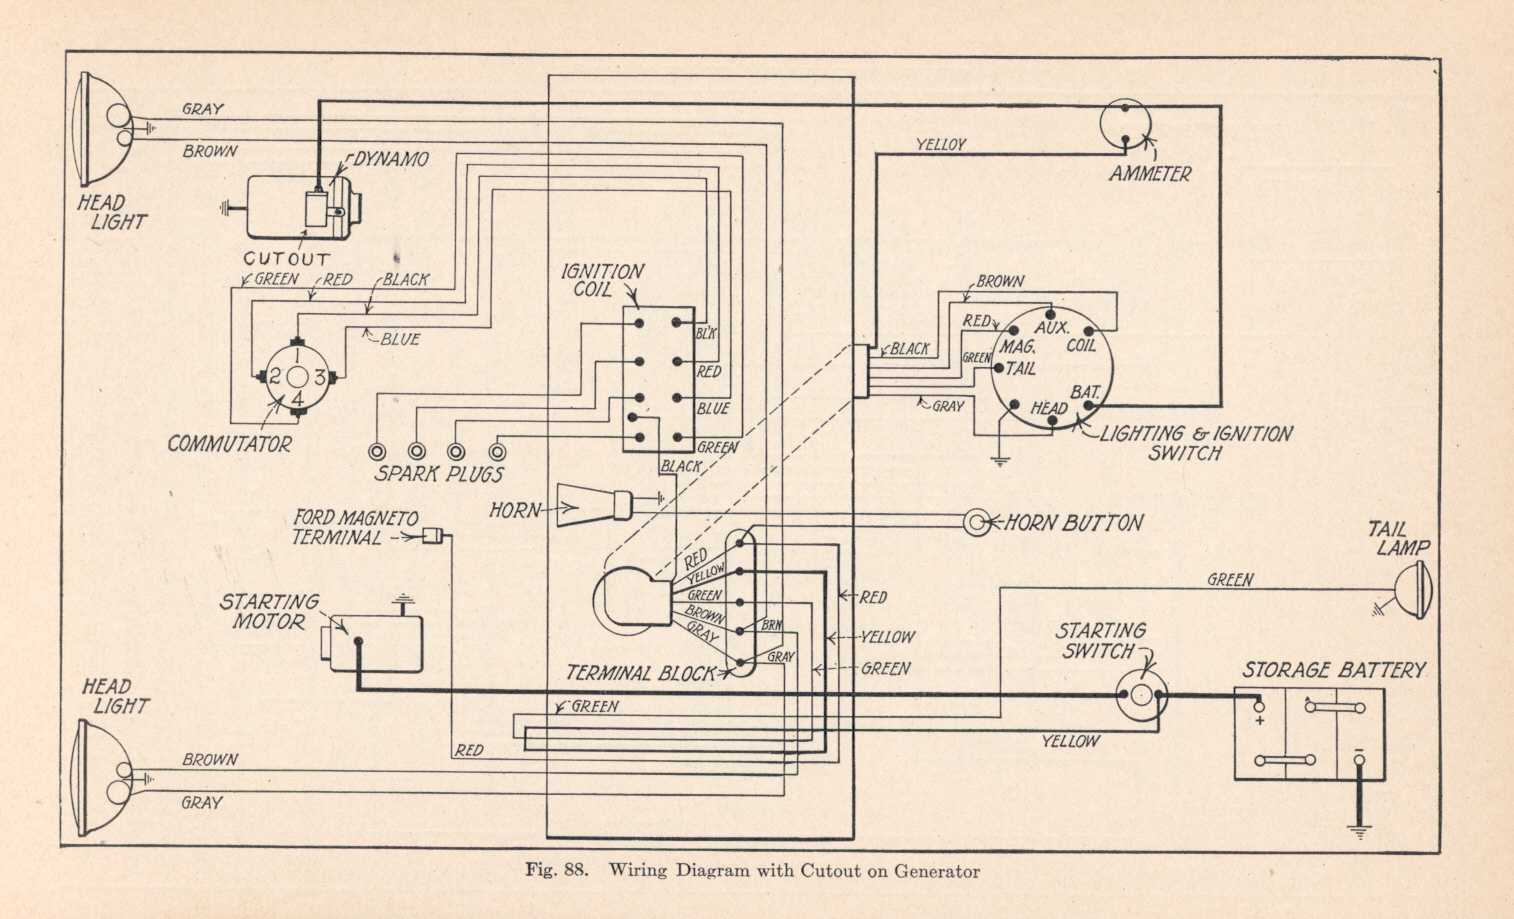 80032 model t ford forum amp meter wiring help needed model t generator wiring diagram at webbmarketing.co